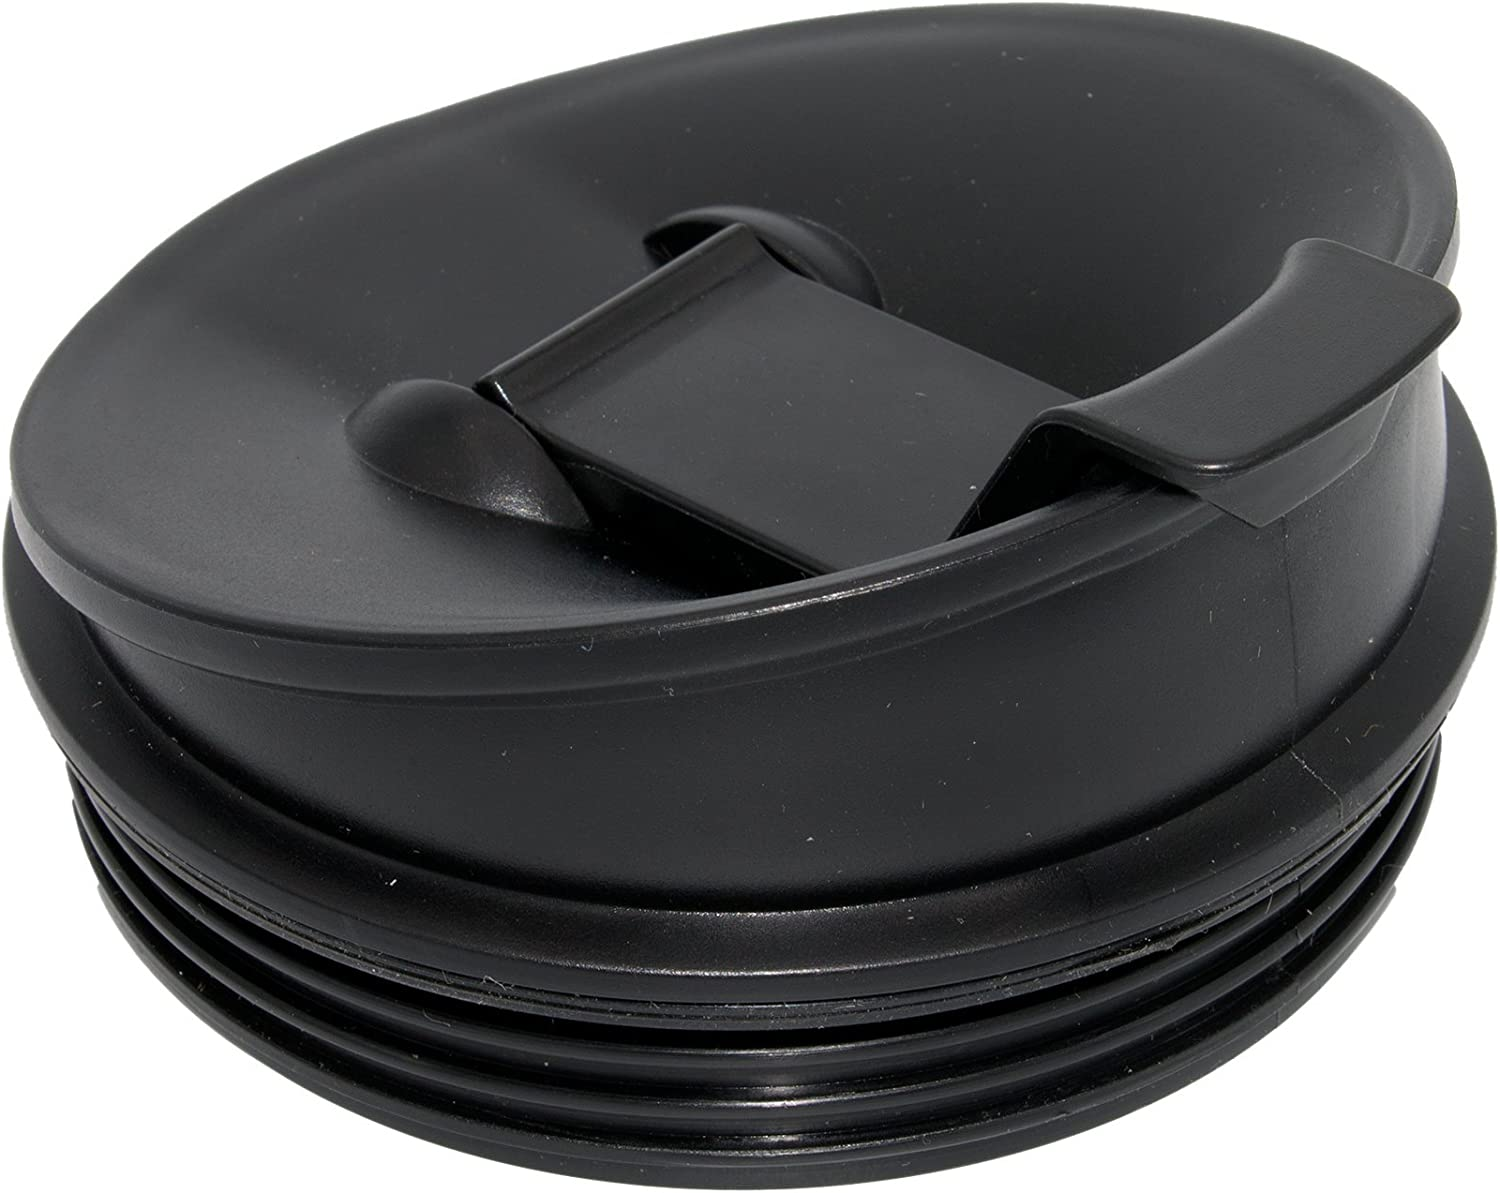 Blendin Sip N Seal Flip Top To Go Lid, Compatible with Nutri Ninja Auto-iQ and Duo Blenders